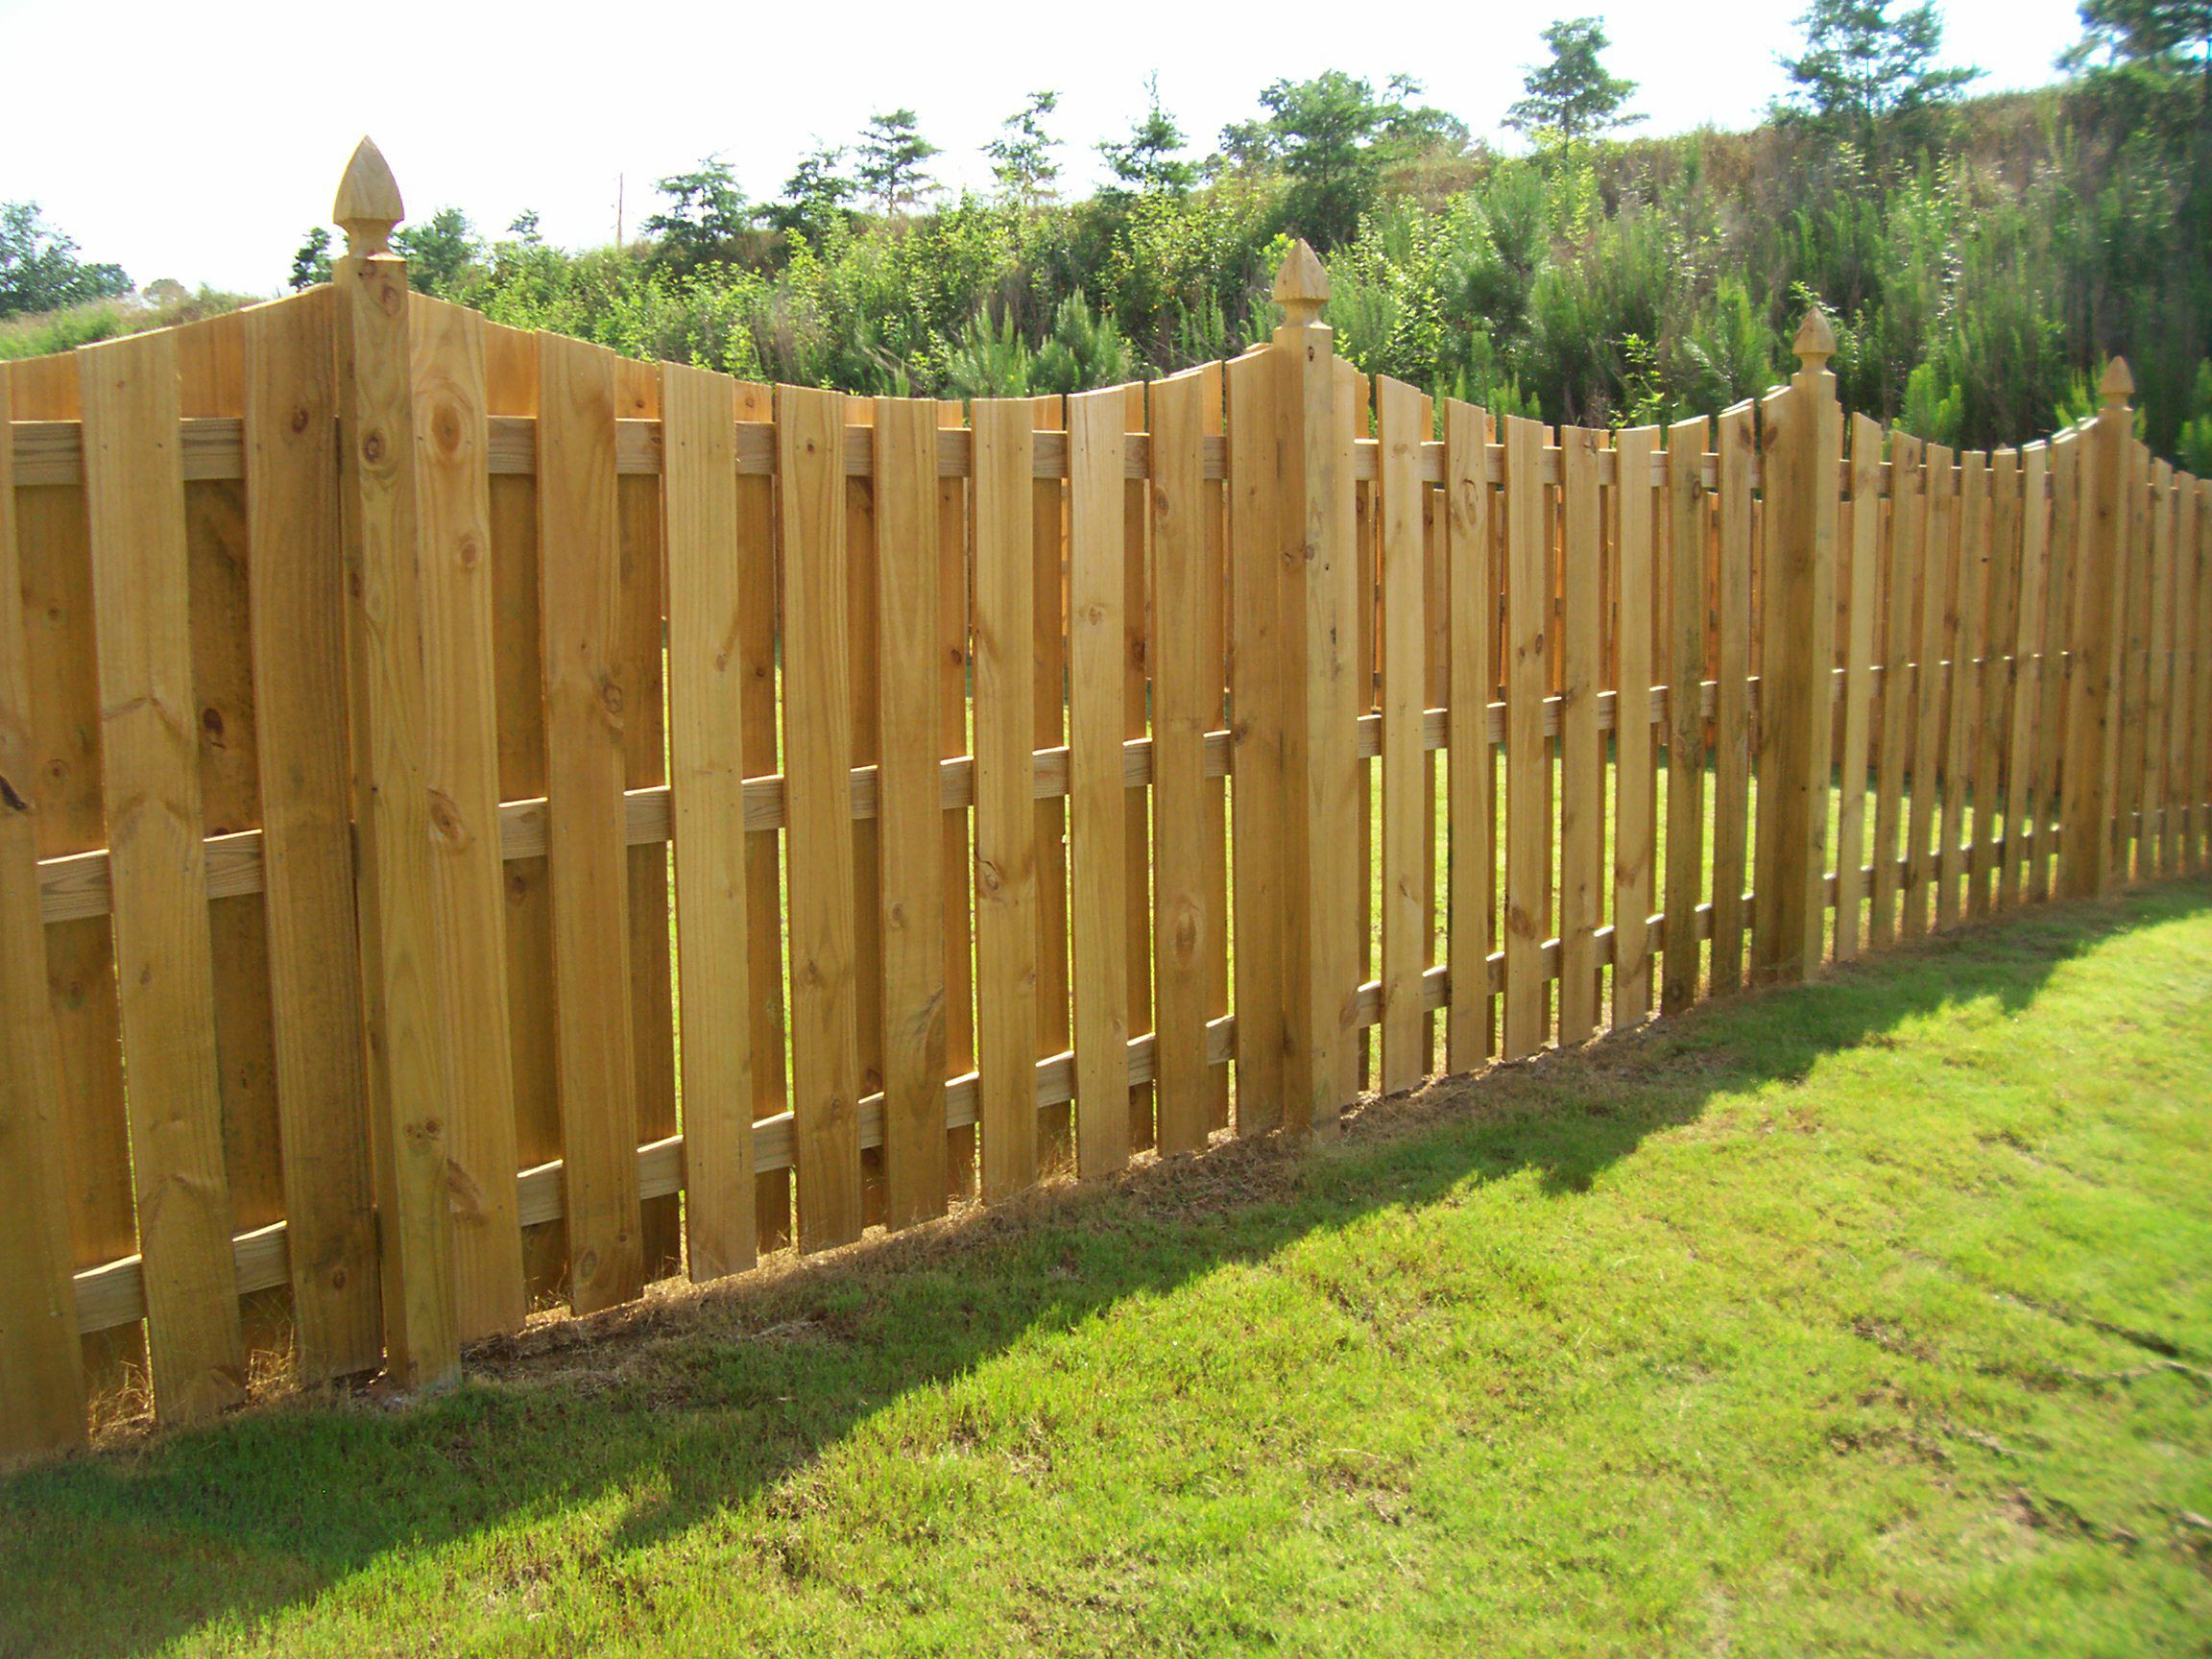 Low Wooden Fence Staxel: Maple Wood Fence Design For Backyard Come With Concave